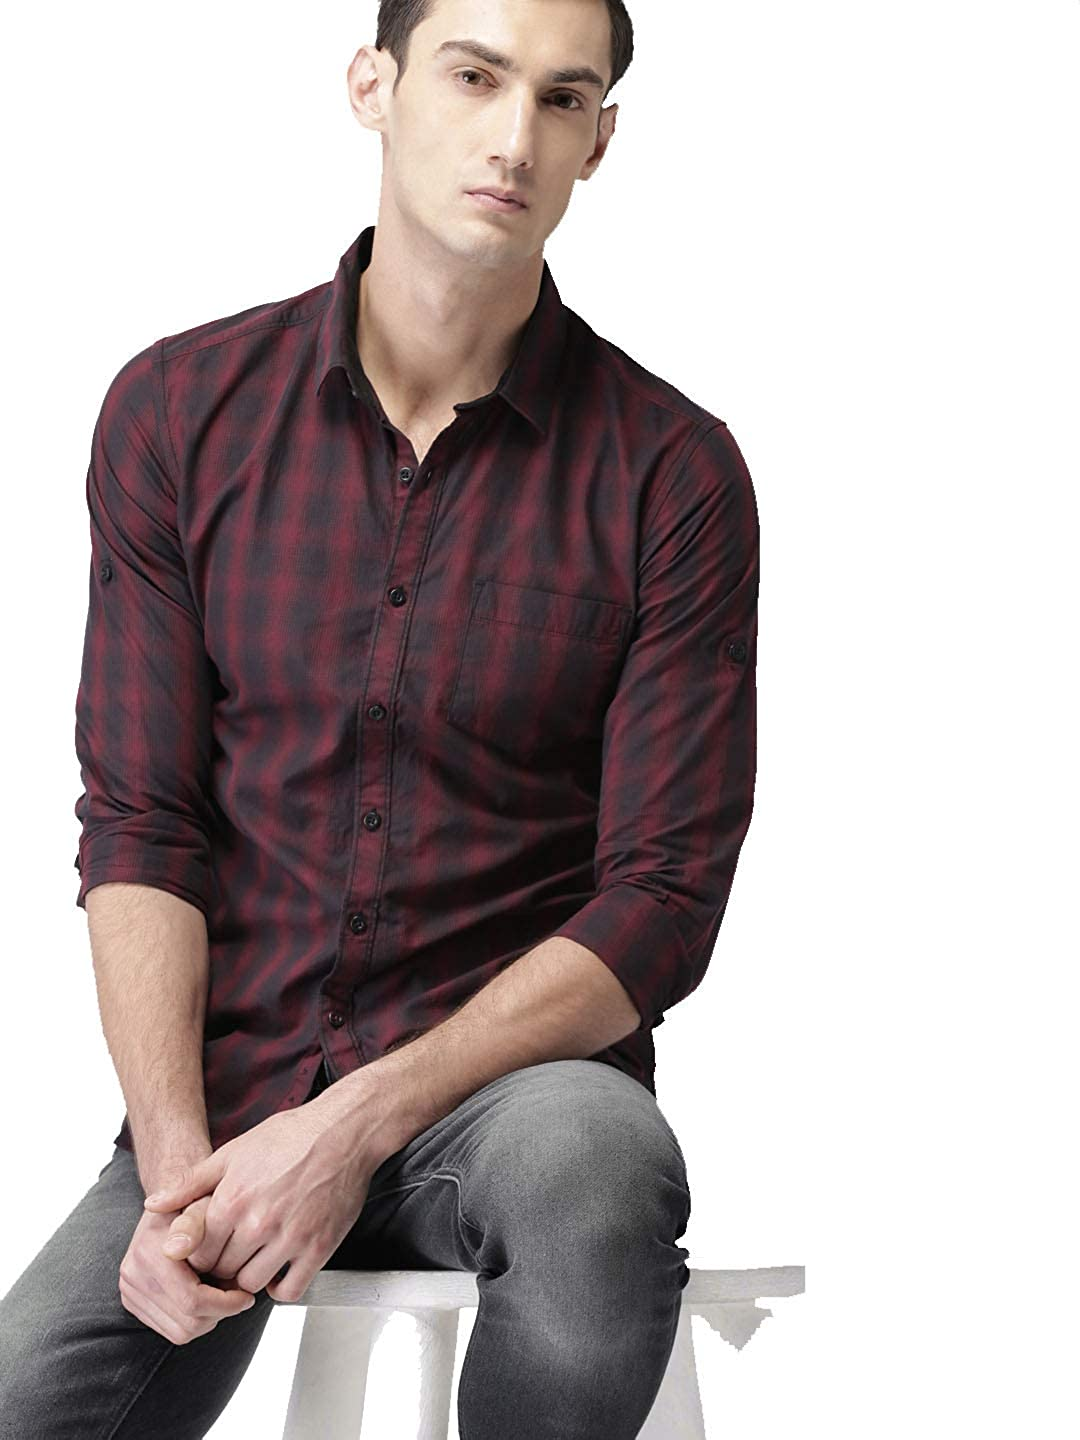 Dream Angel Fashion Men Black /& Maroon Slim Fit Checked Long Sleeves with roll-up tab Feature Casual Shirt